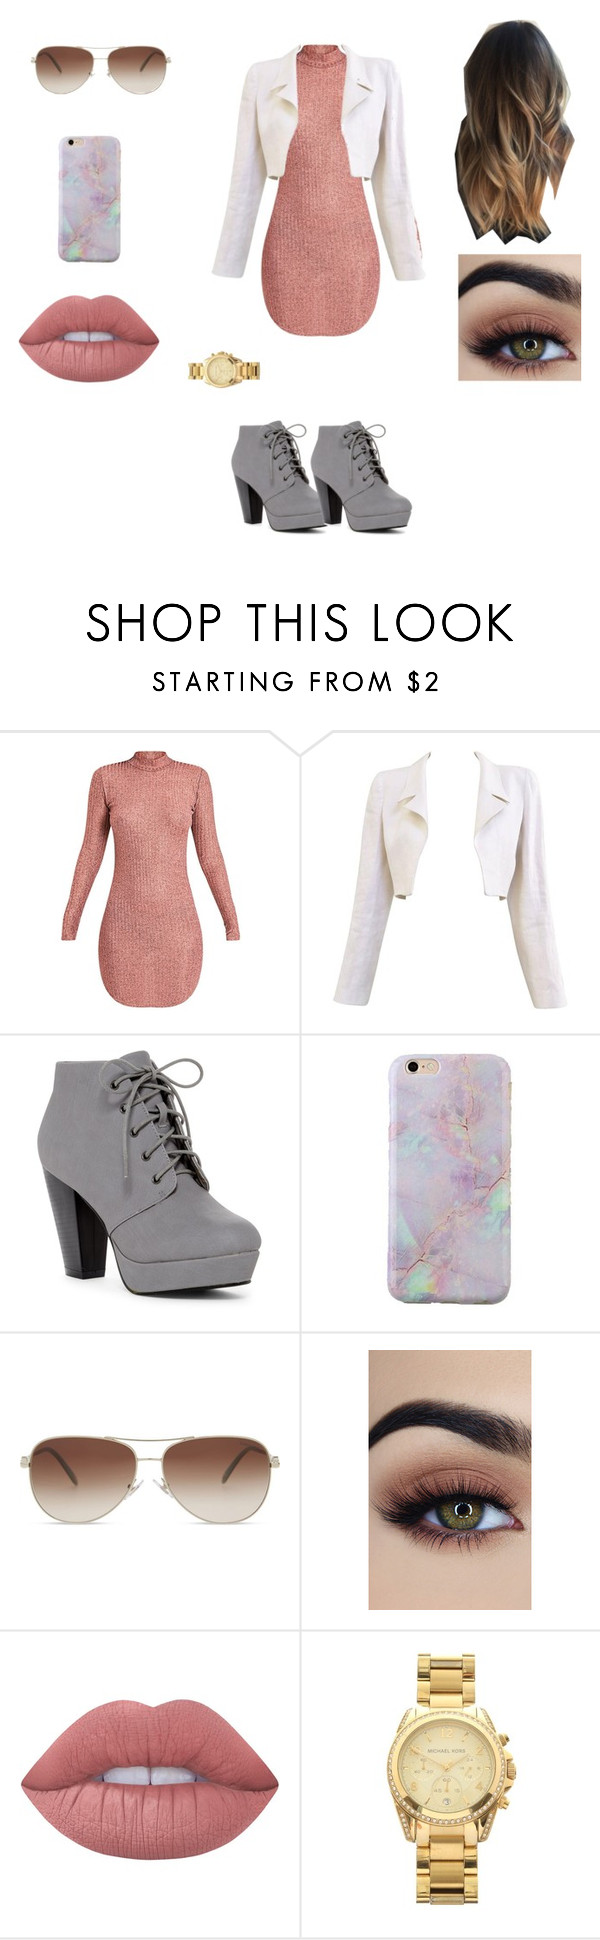 """""""Celebrate Our 10th Polyversary!"""" by keionnakilbourne ❤ liked on Polyvore featuring Chanel, Tiffany & Co., Lime Crime, Michael Kors, polyversary and contestentry"""